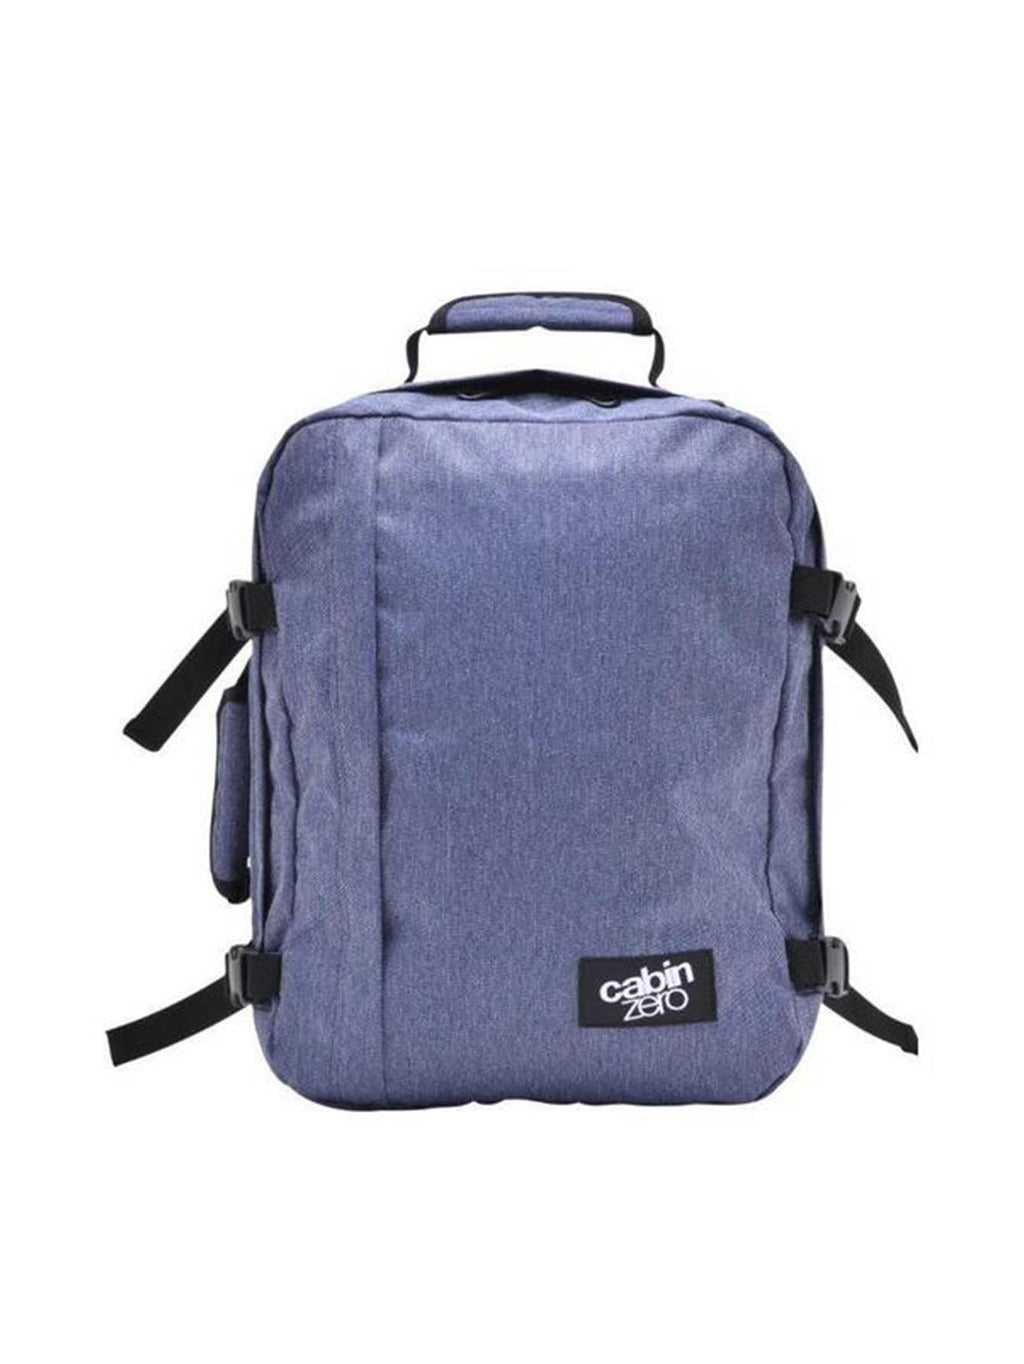 Cabinzero Classic 28L Ultra-Light Cabin Bag in Blue Jean Color